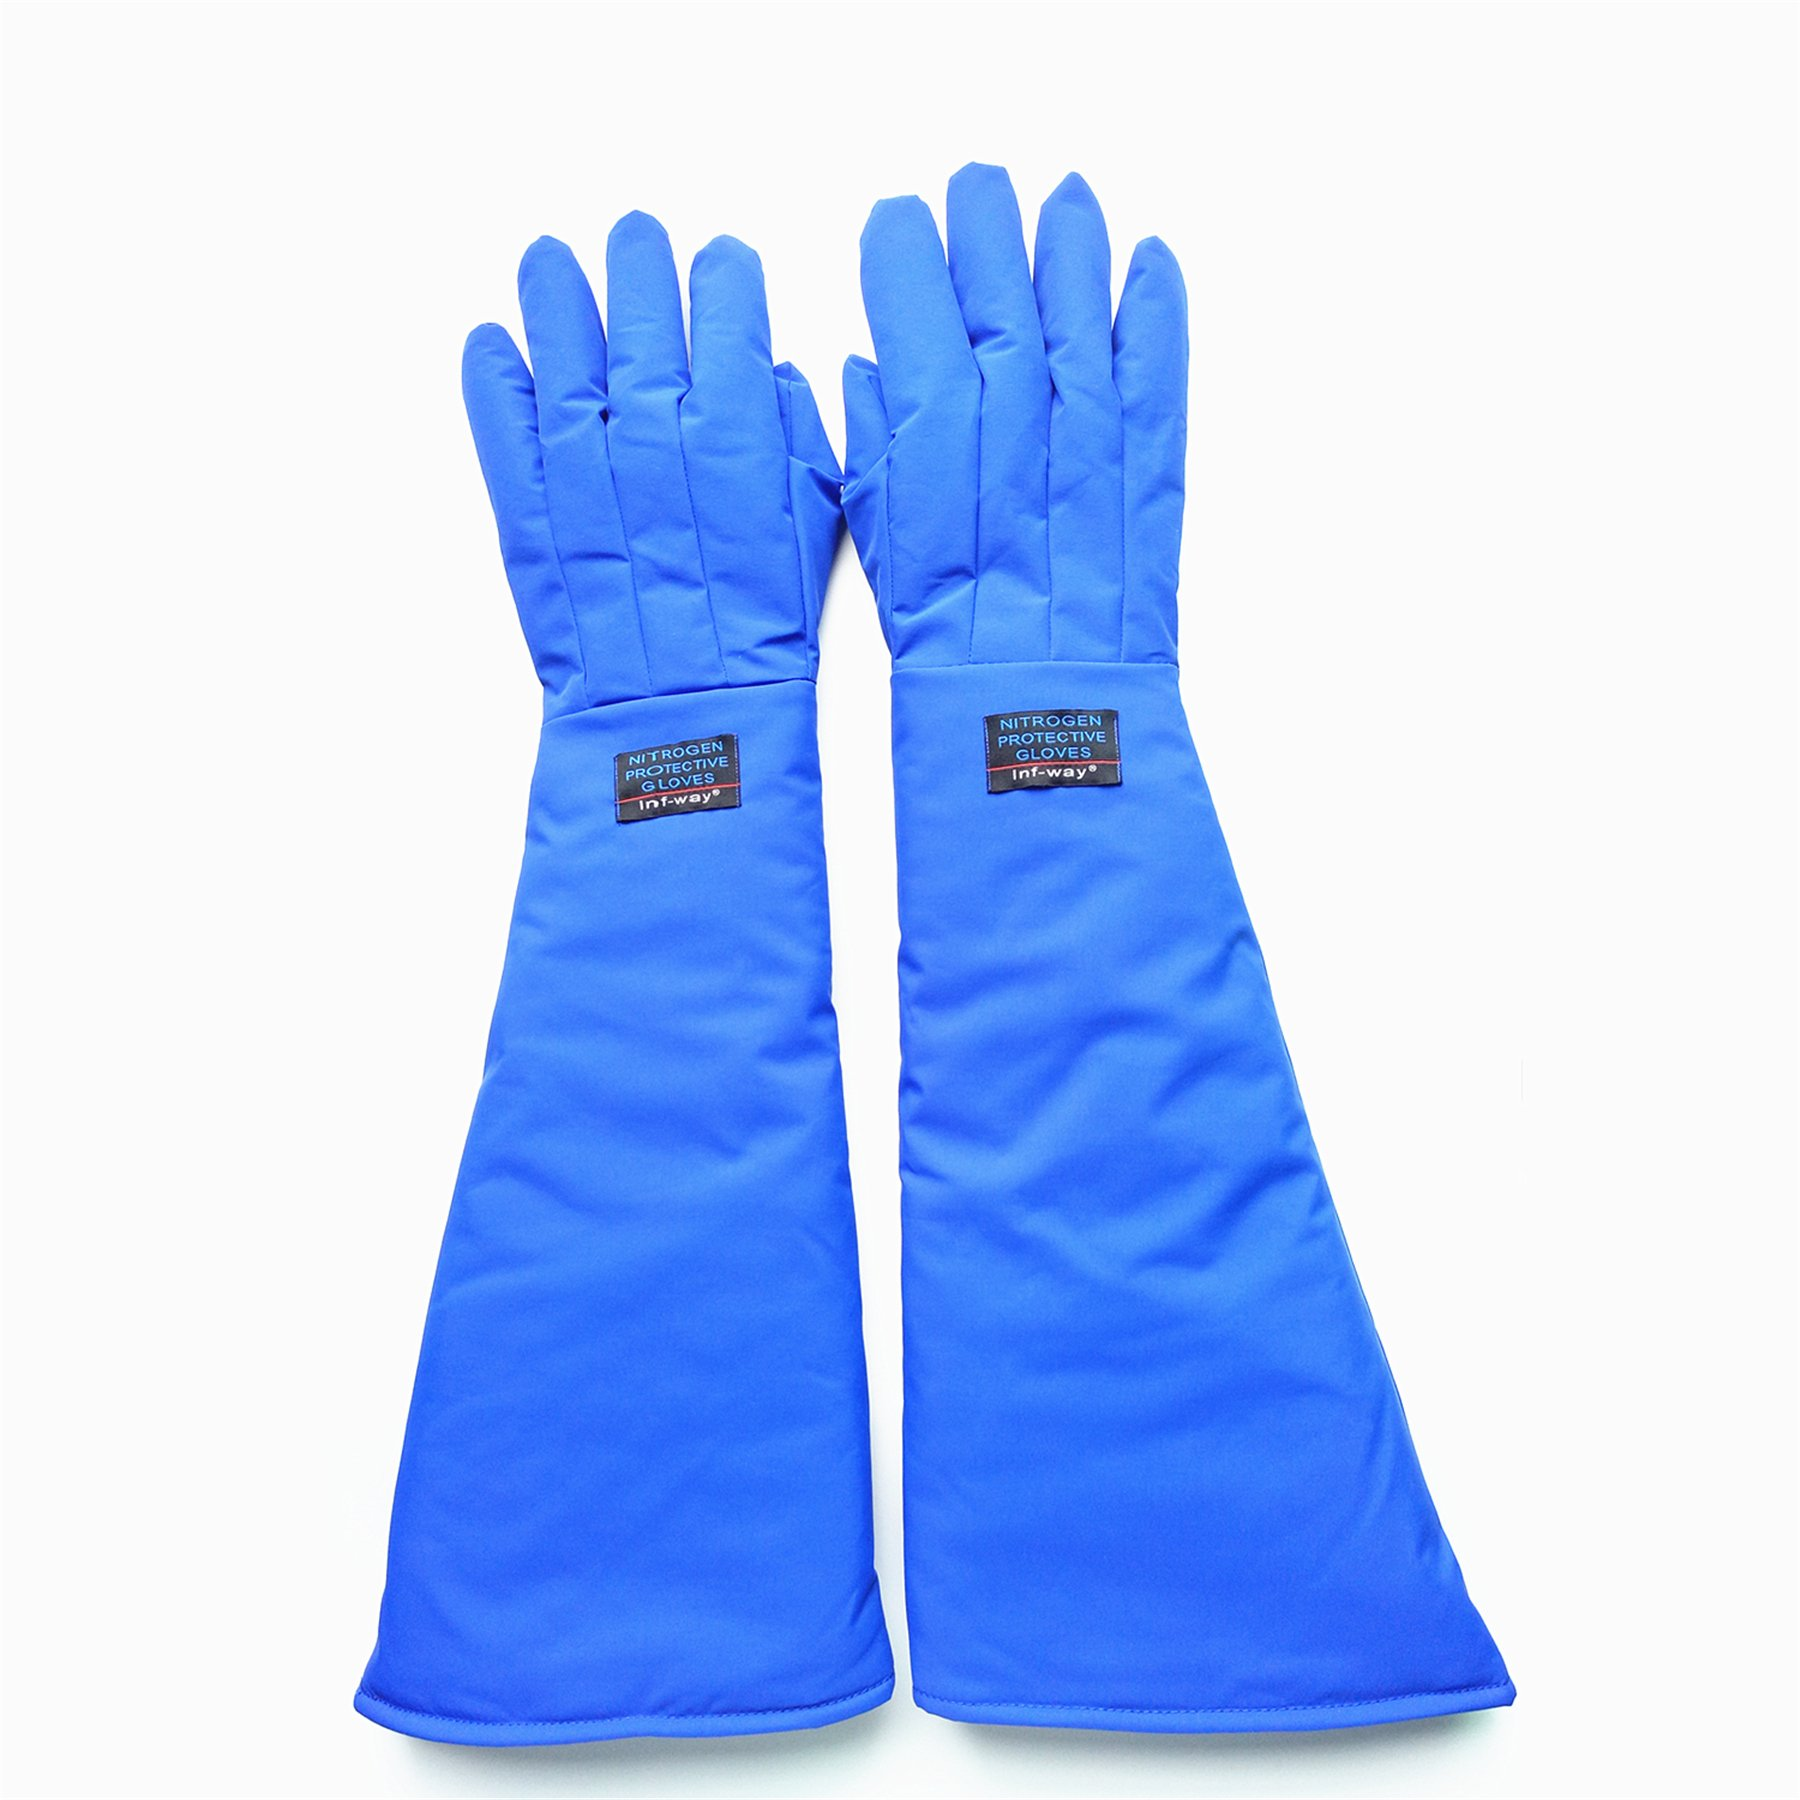 Inf-way 4 Sizes Long Cryogenic Gloves Waterproof Low Temperature Resistant LN2 Liquid Nitrogen Protective Gloves Cold Storage Safety Frozen Gloves (Blue Large) by Inf-way (Image #2)